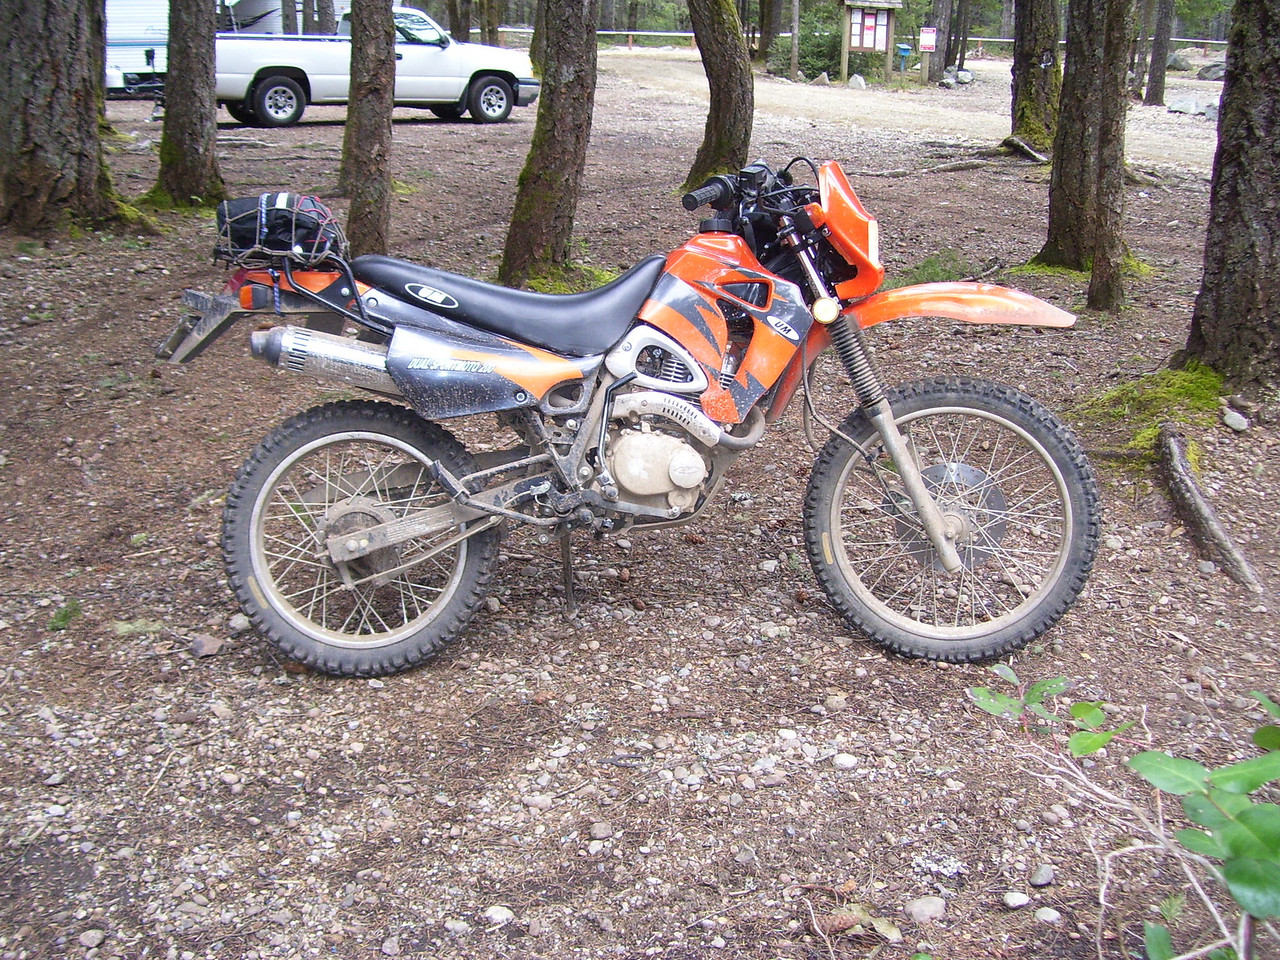 Marty's UM 200 which everyone thinks is a KTM (Orange).